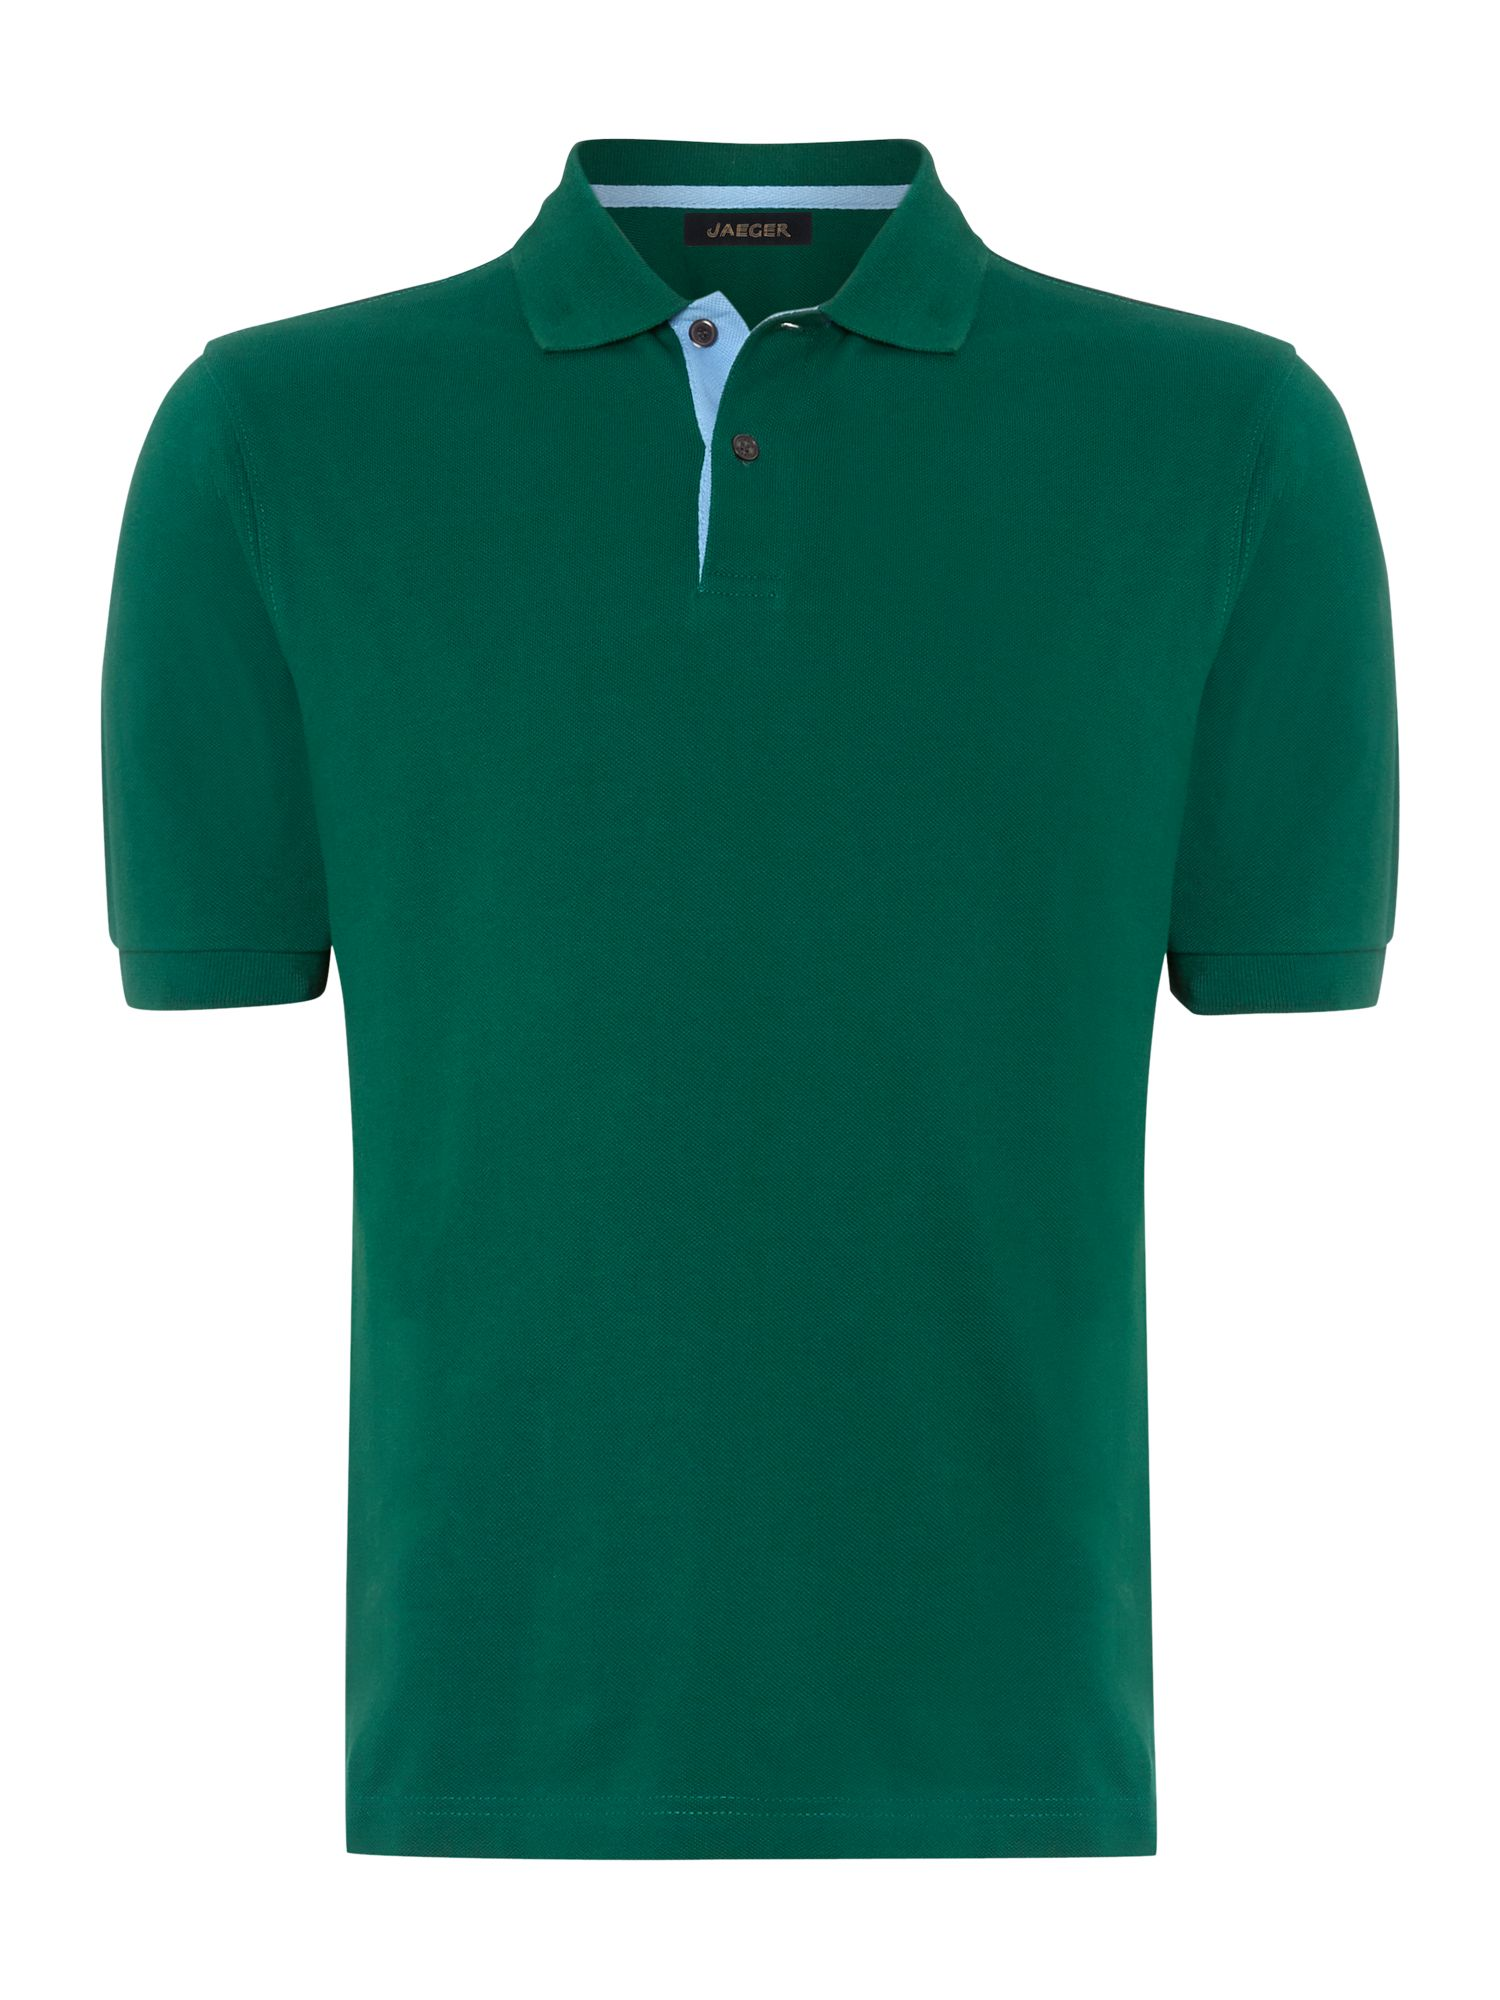 Pique polo shirt with contrast placket